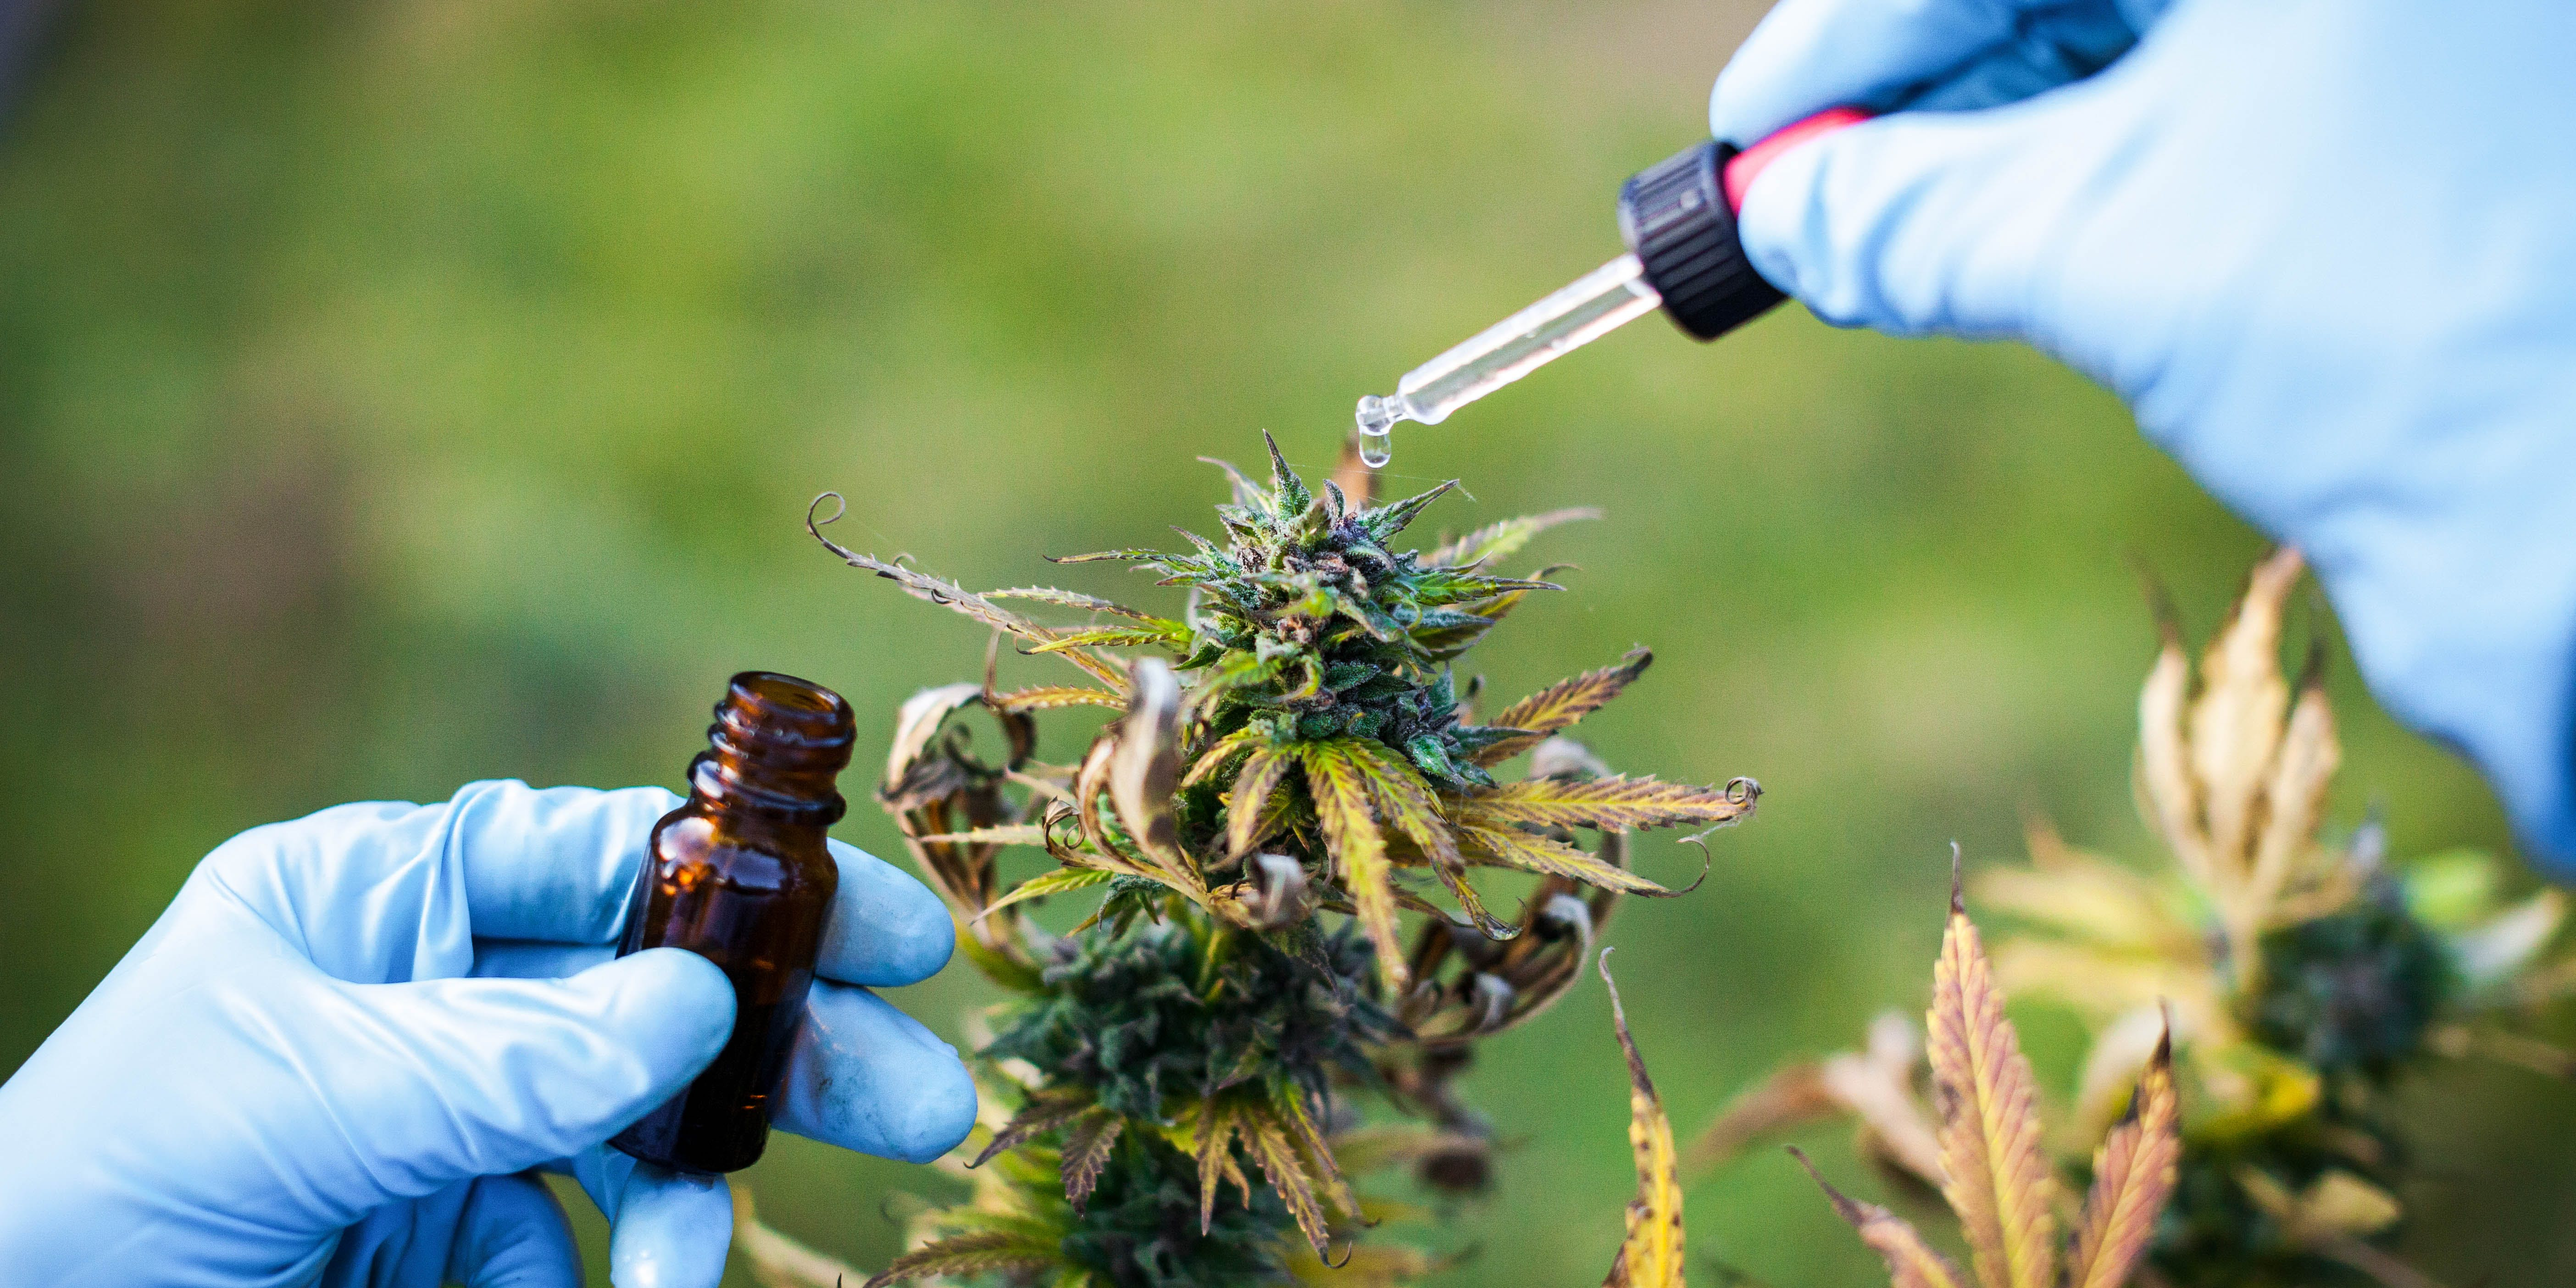 Cannabis For IBD: Study Explains Why Cannabis Works For Bowel Inflammation. Here, a young woman is shown preparing homeophatic medicine from a marijuana plant.